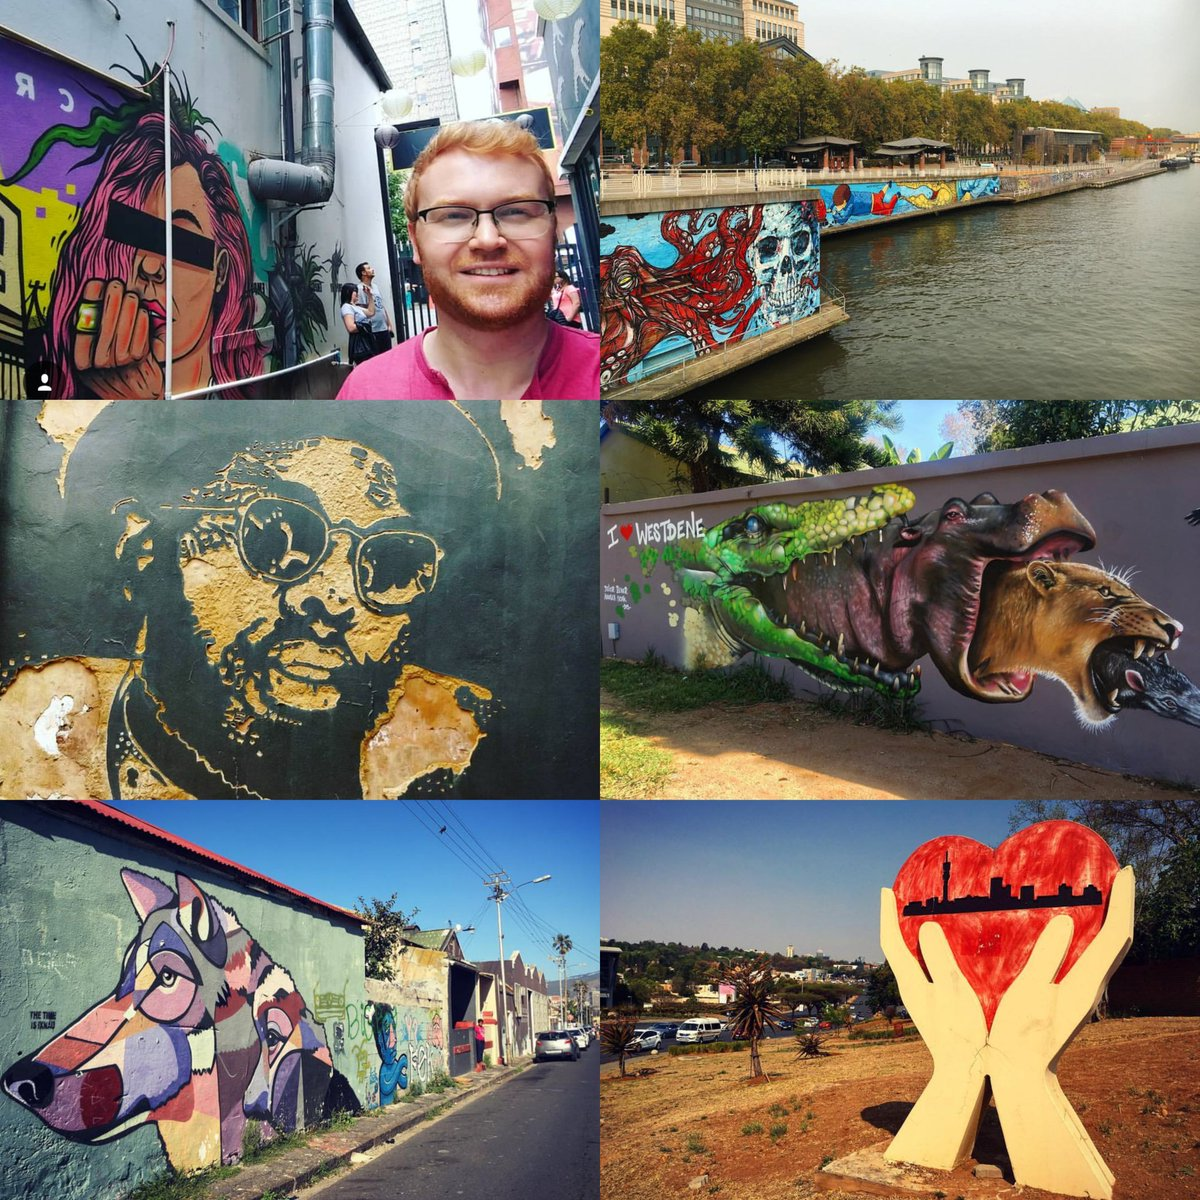 I love public art. Recently found and photographed these amazing works in Johannesburg, Pretoria, Cape Town and Brussels. If youve also found some great public art, tag your pics in the thread. #TravelTuesday ❤🖌